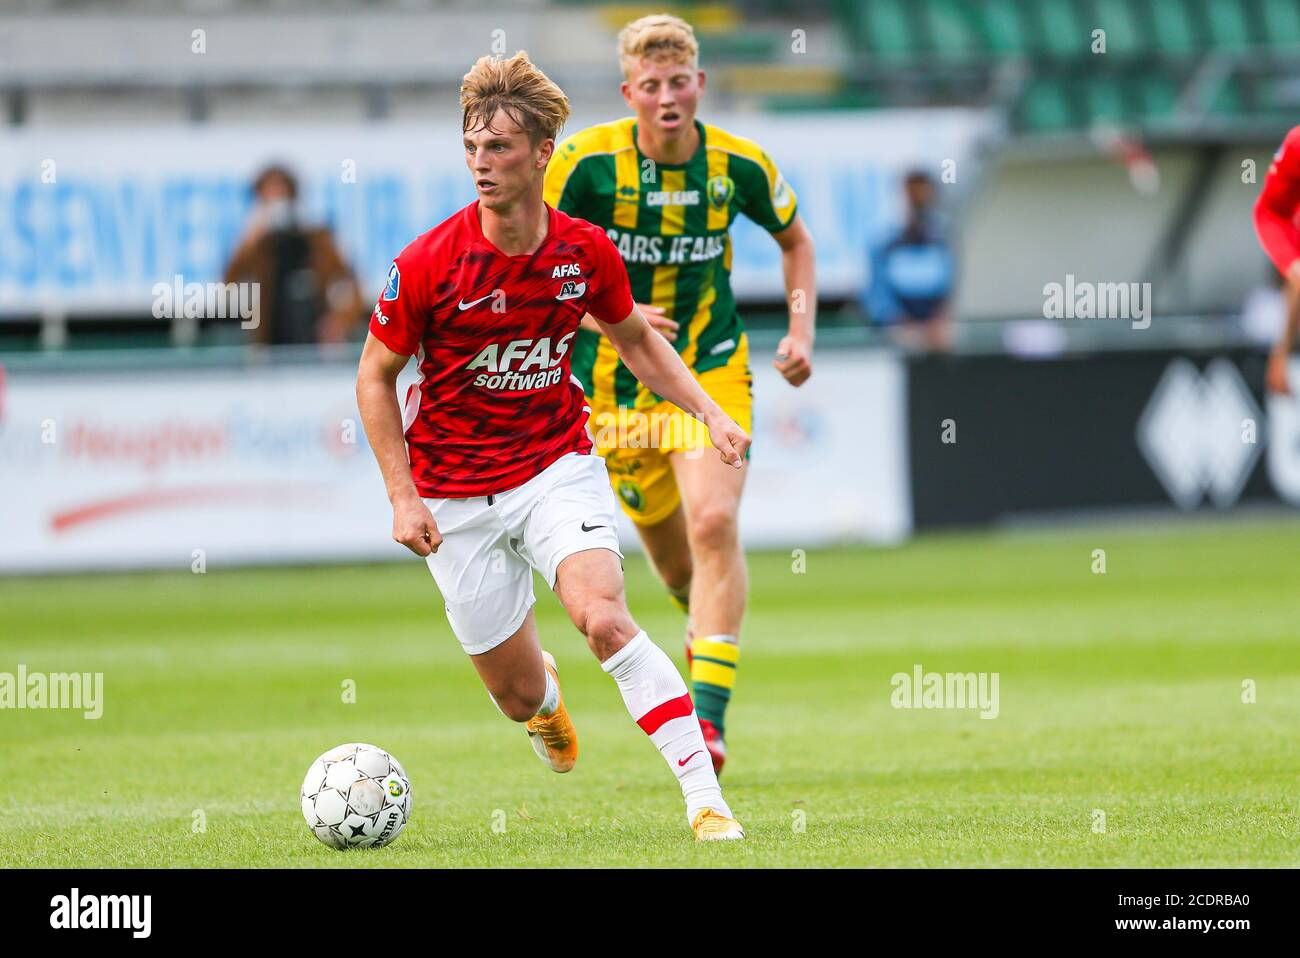 Rotterdam 29 8 20 Cars Jeans Stadion Pre Season 20 21 Ado Den Haag Az Az Player Albert Gudmundsson Credit Pro Shots Alamy Live News Stock Photo Alamy